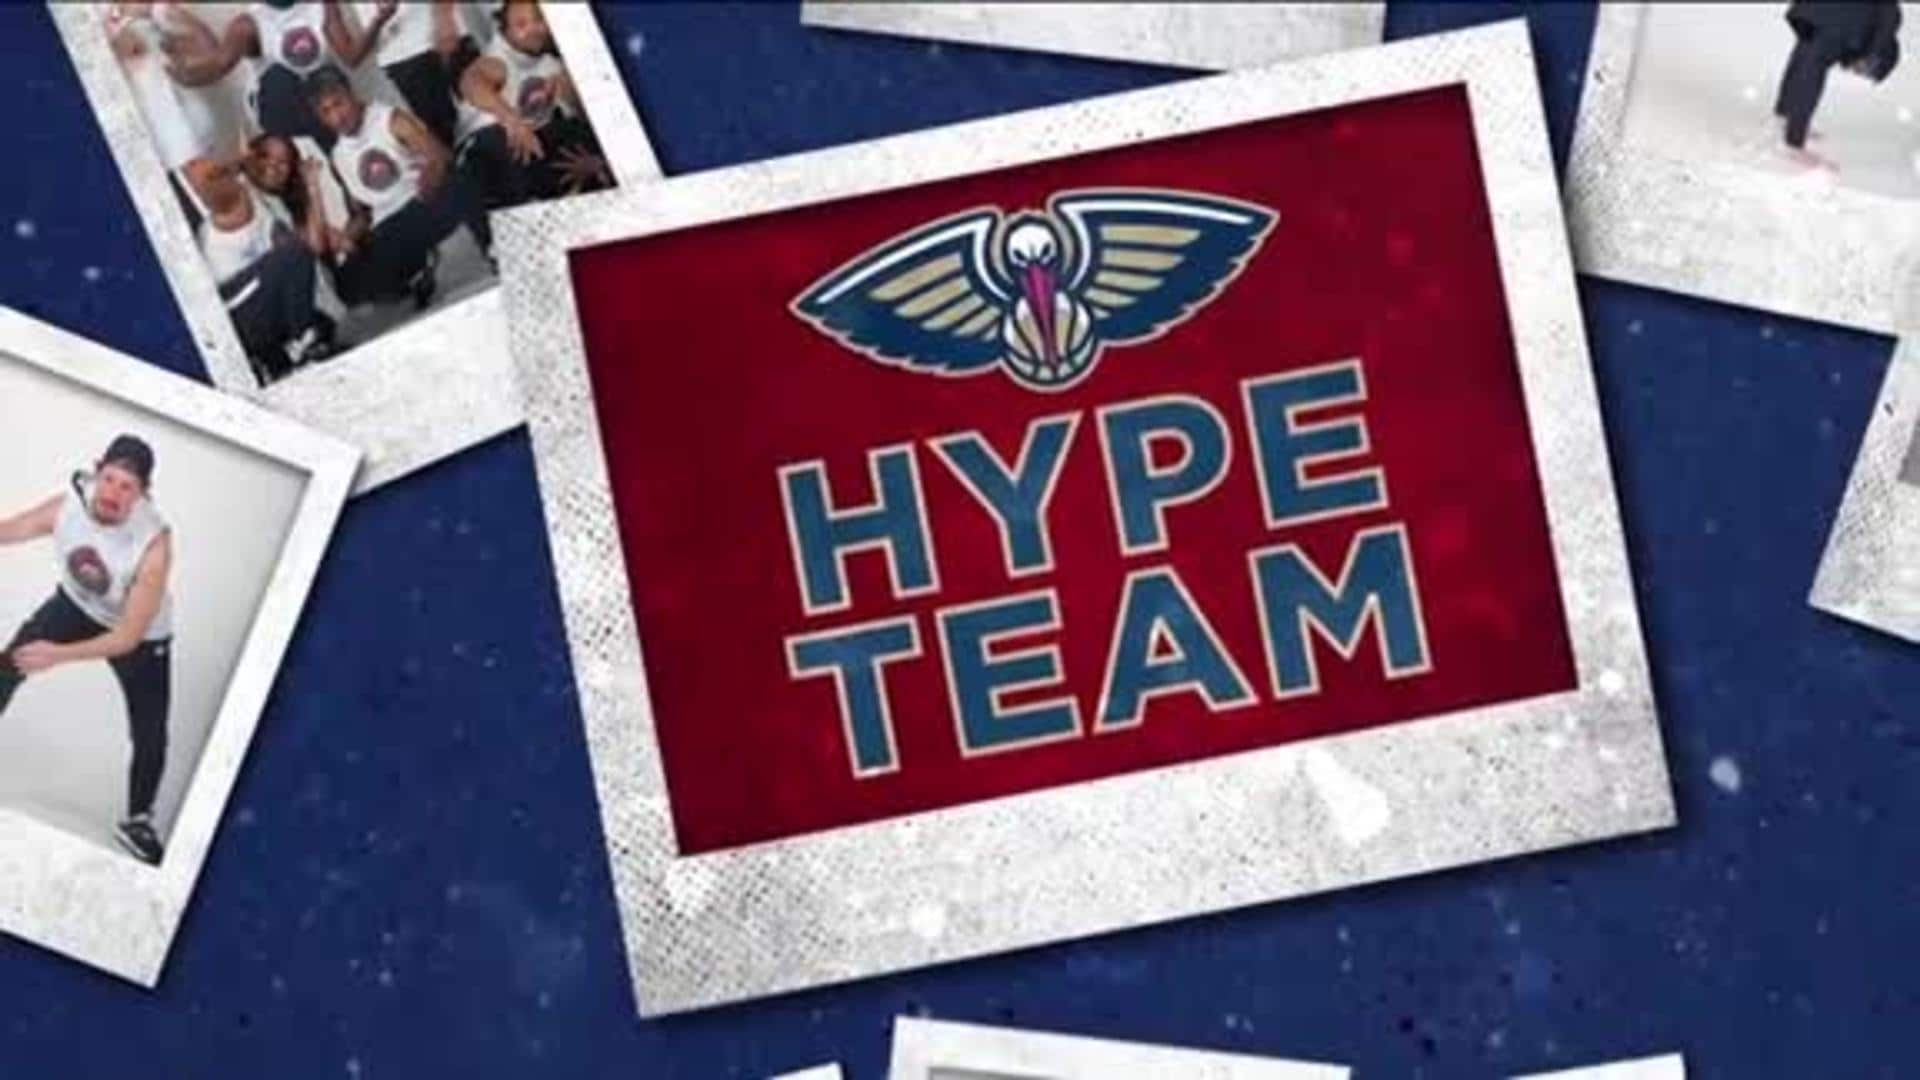 Entertainment: Pelicans Hype Team 2nd quarter performance - February 4 vs. Milwaukee Bucks